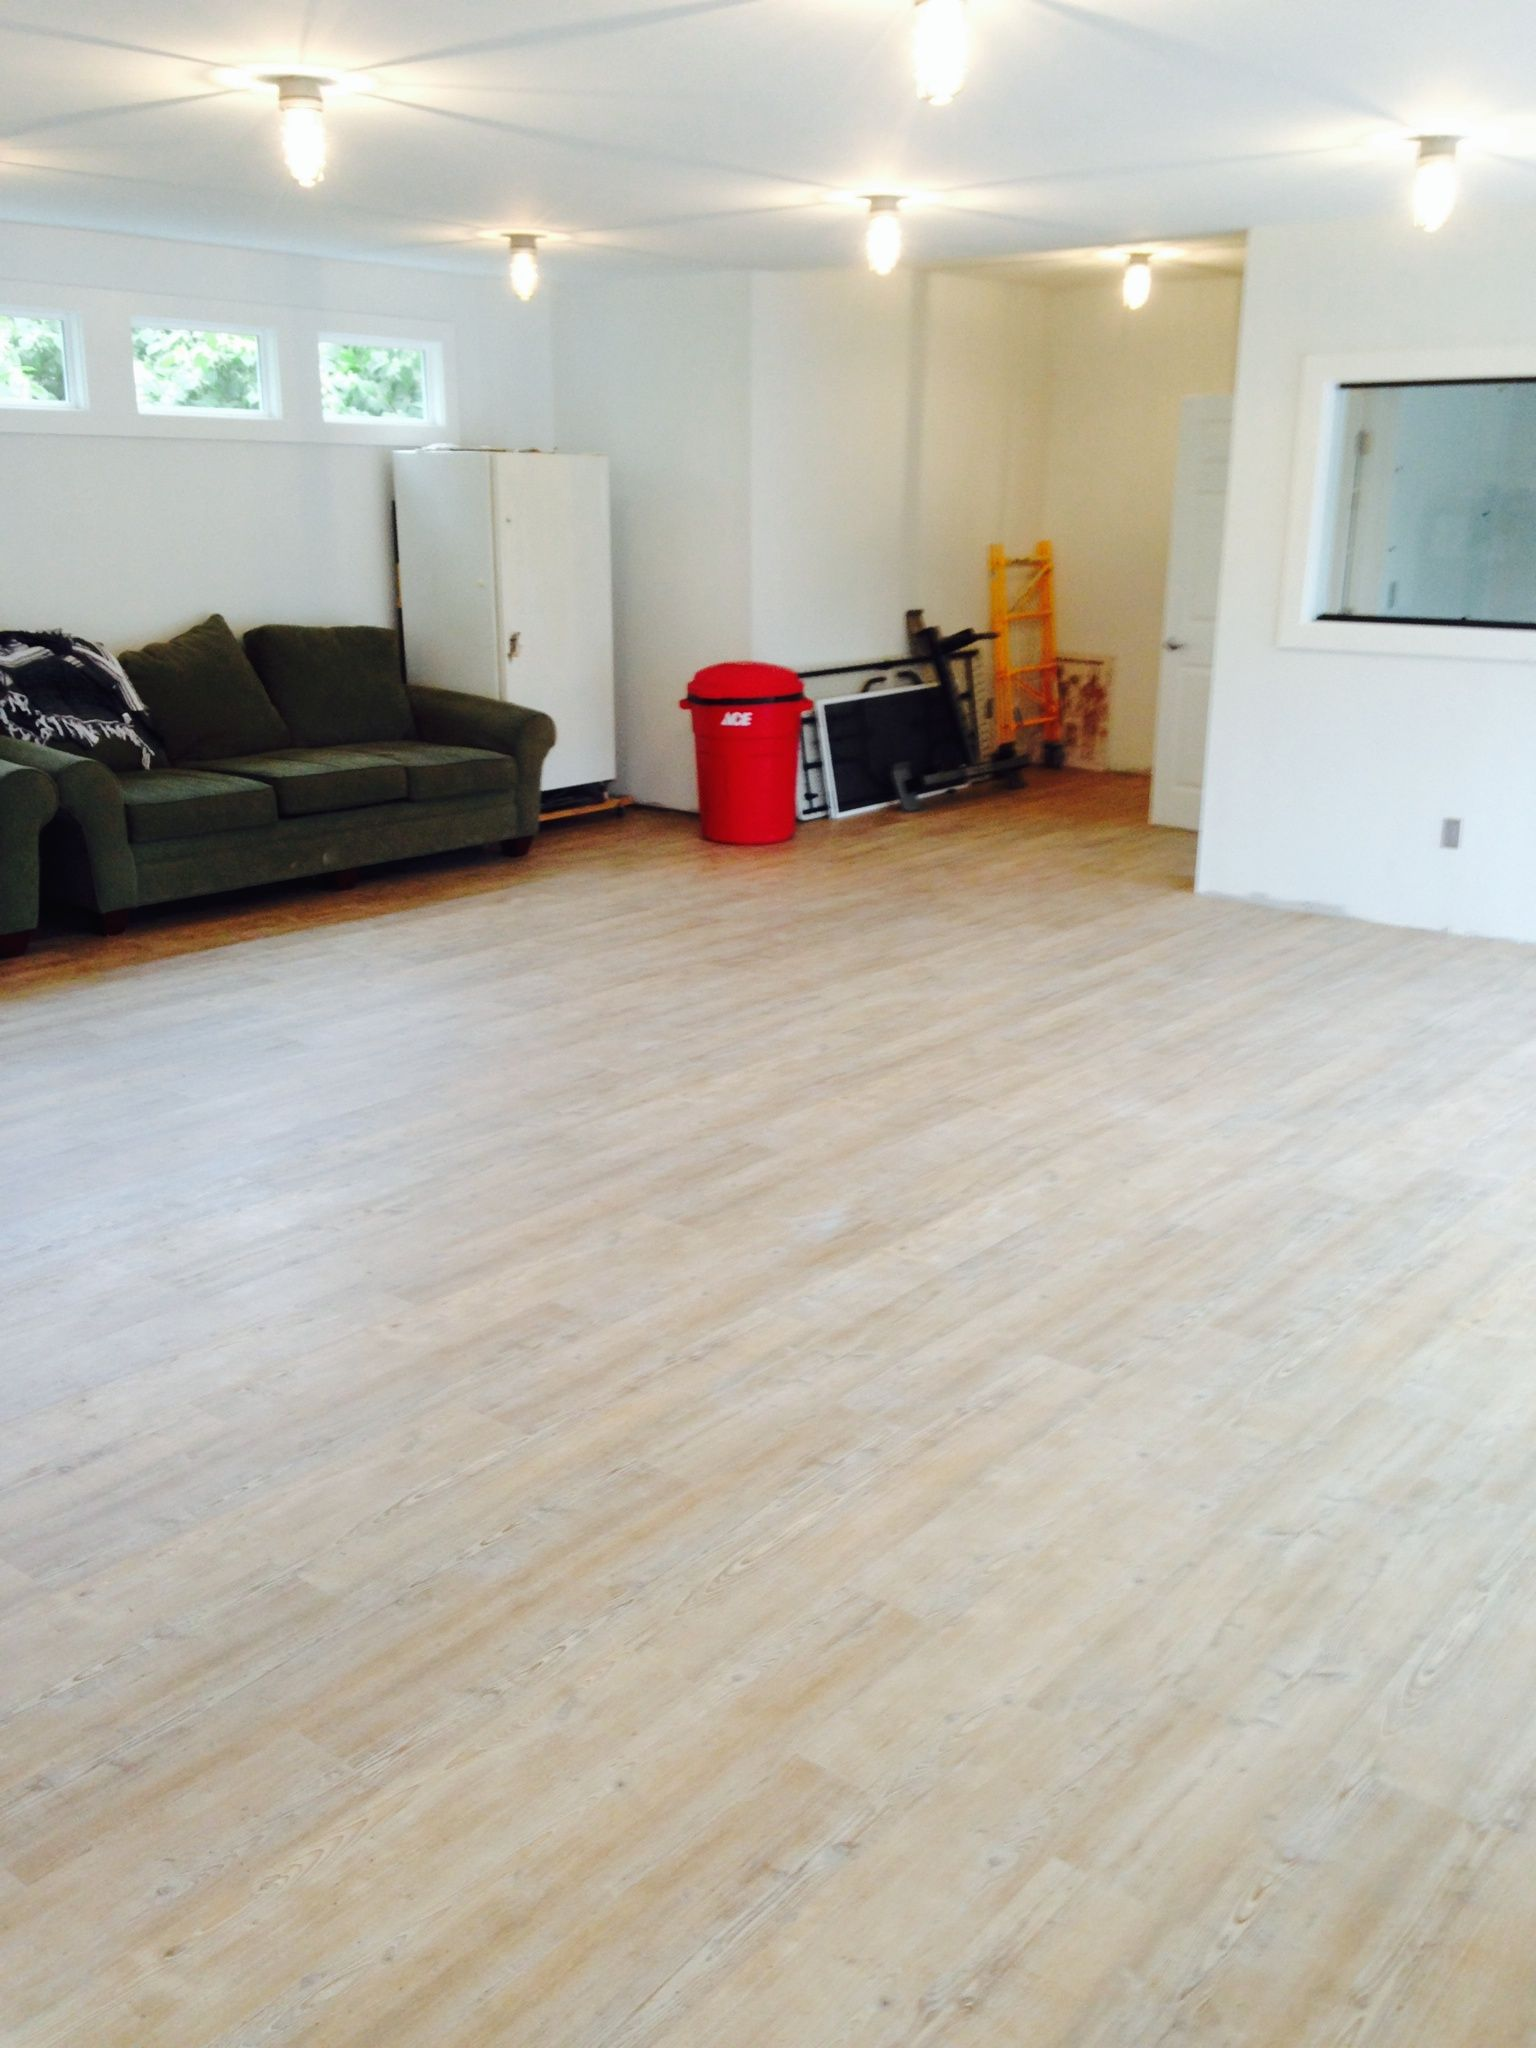 Arcadian Soya Pine Vinyl Floating Floor Installed On A Gym Floor Floor Installation Floating Floor Cork Flooring